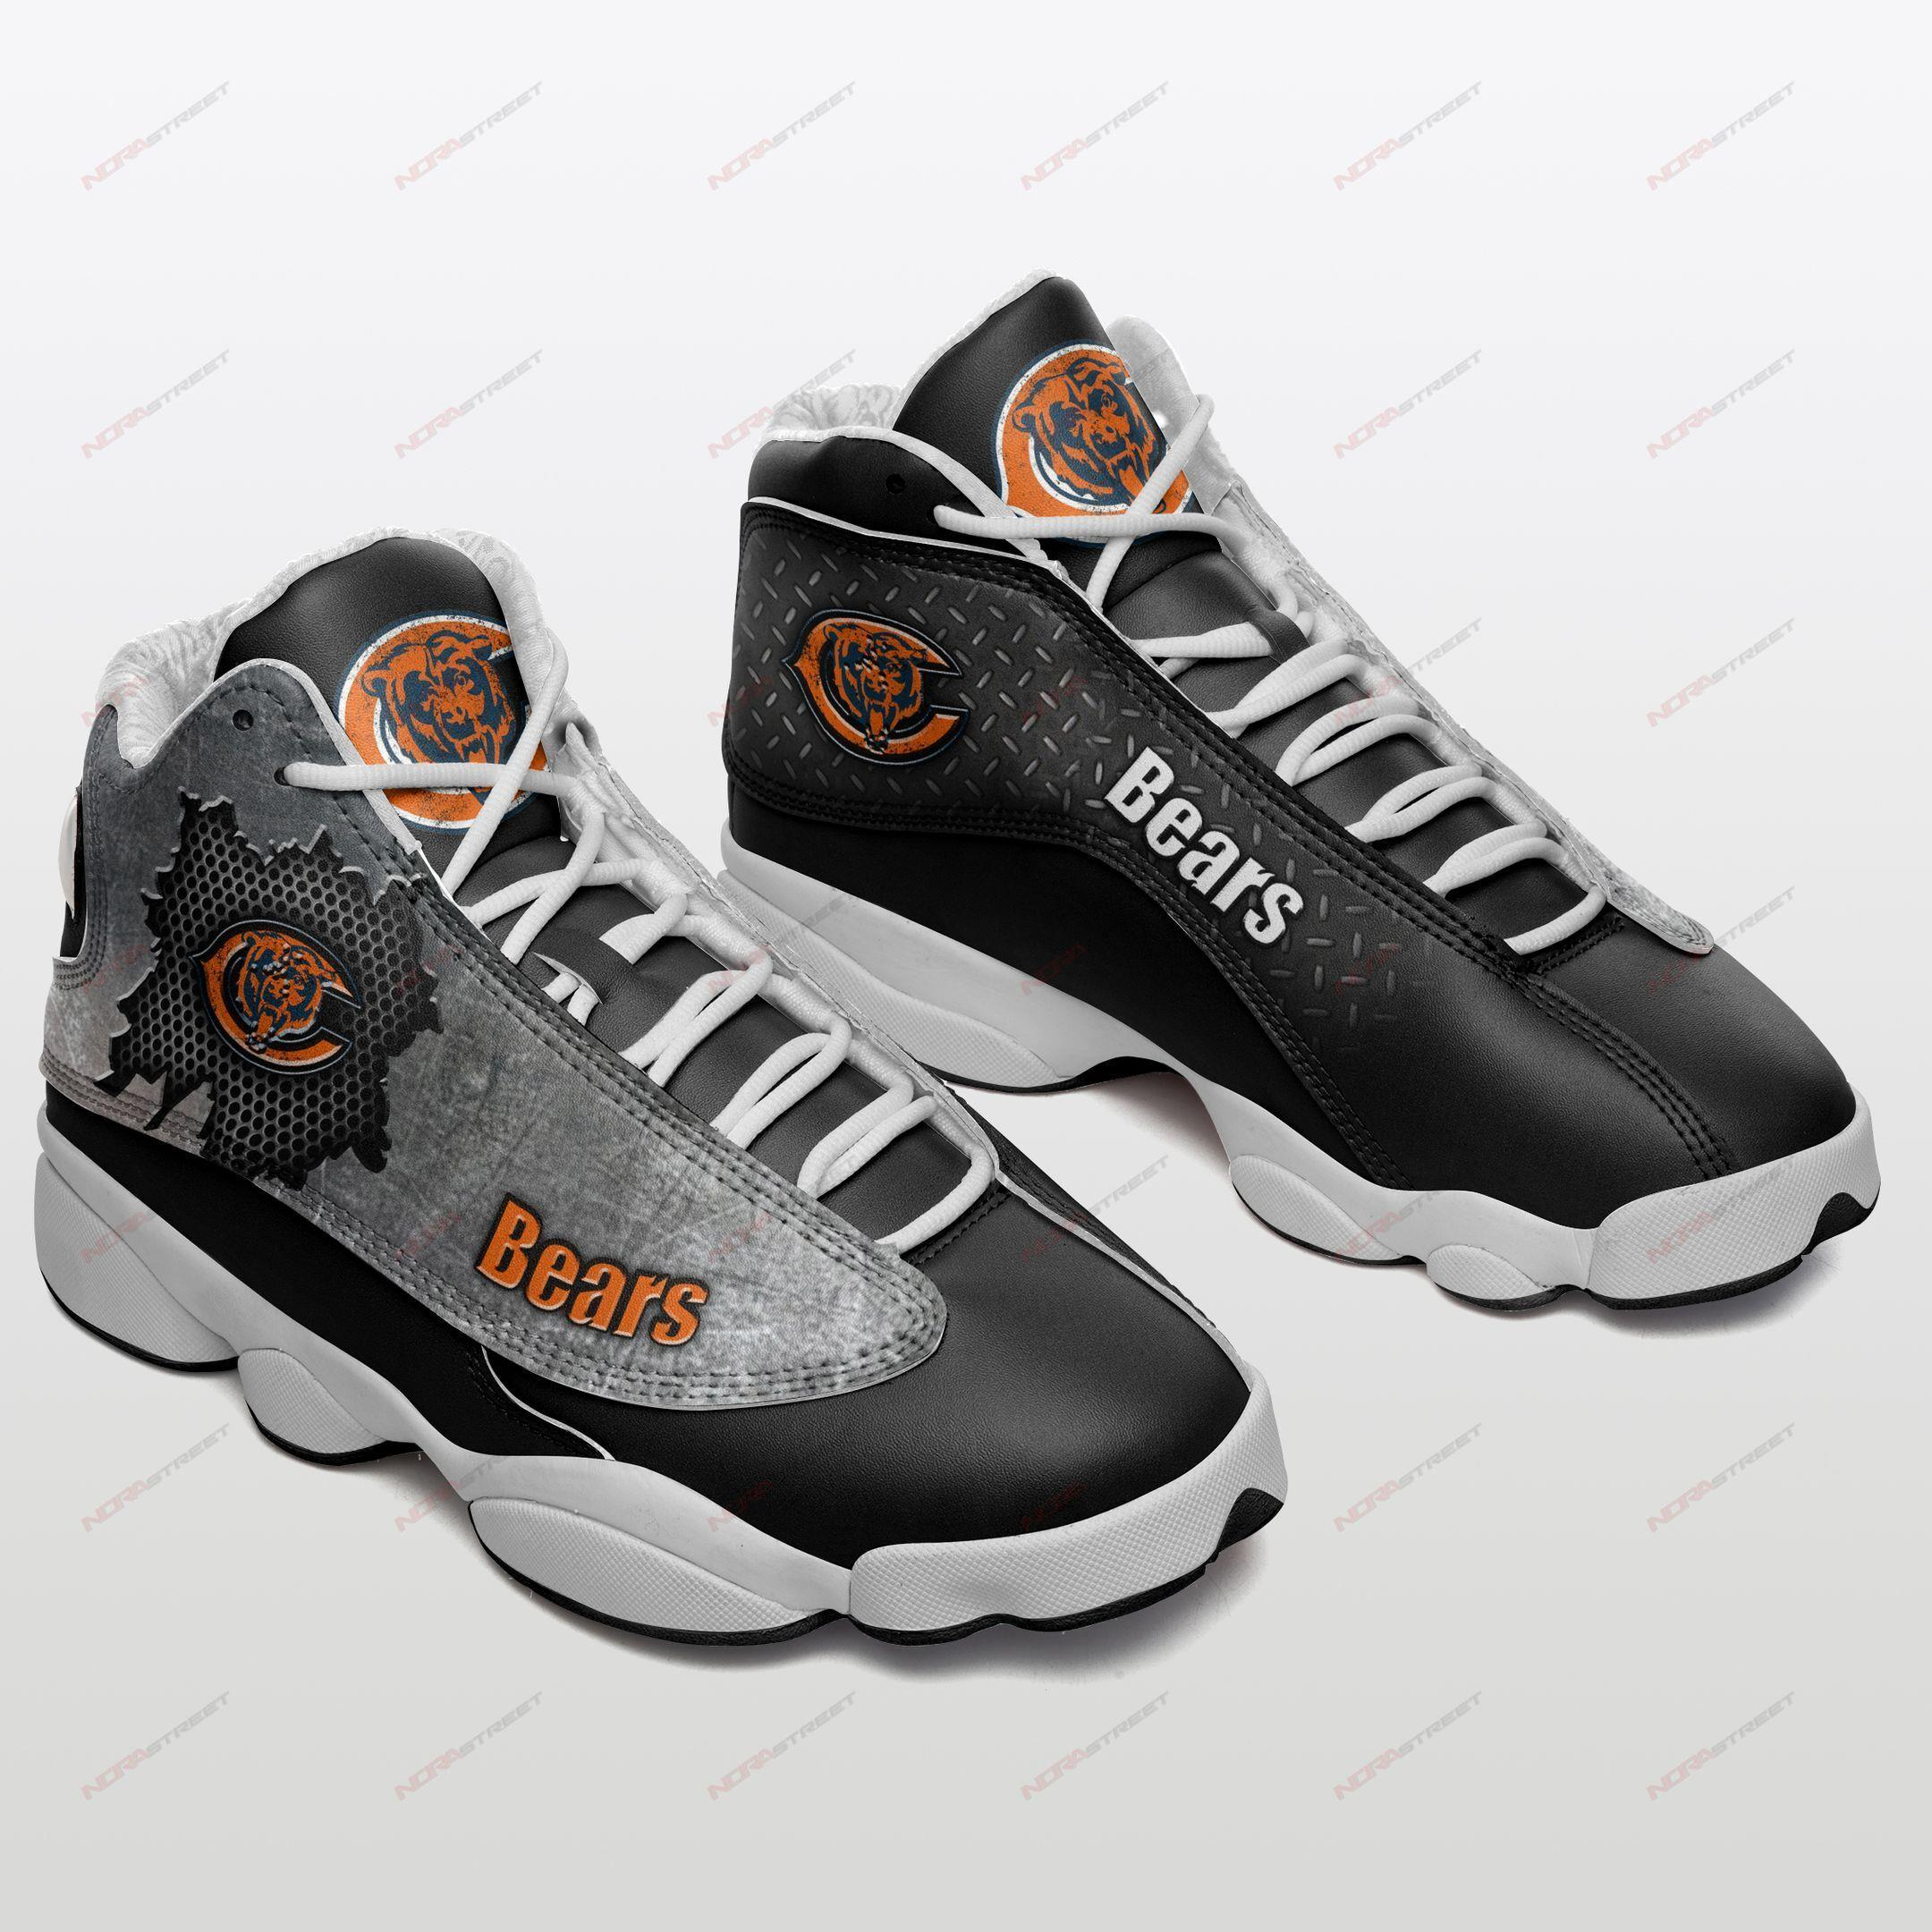 Chicago Bears Air Jordan 13 Sneakers Sport Shoes Plus Size